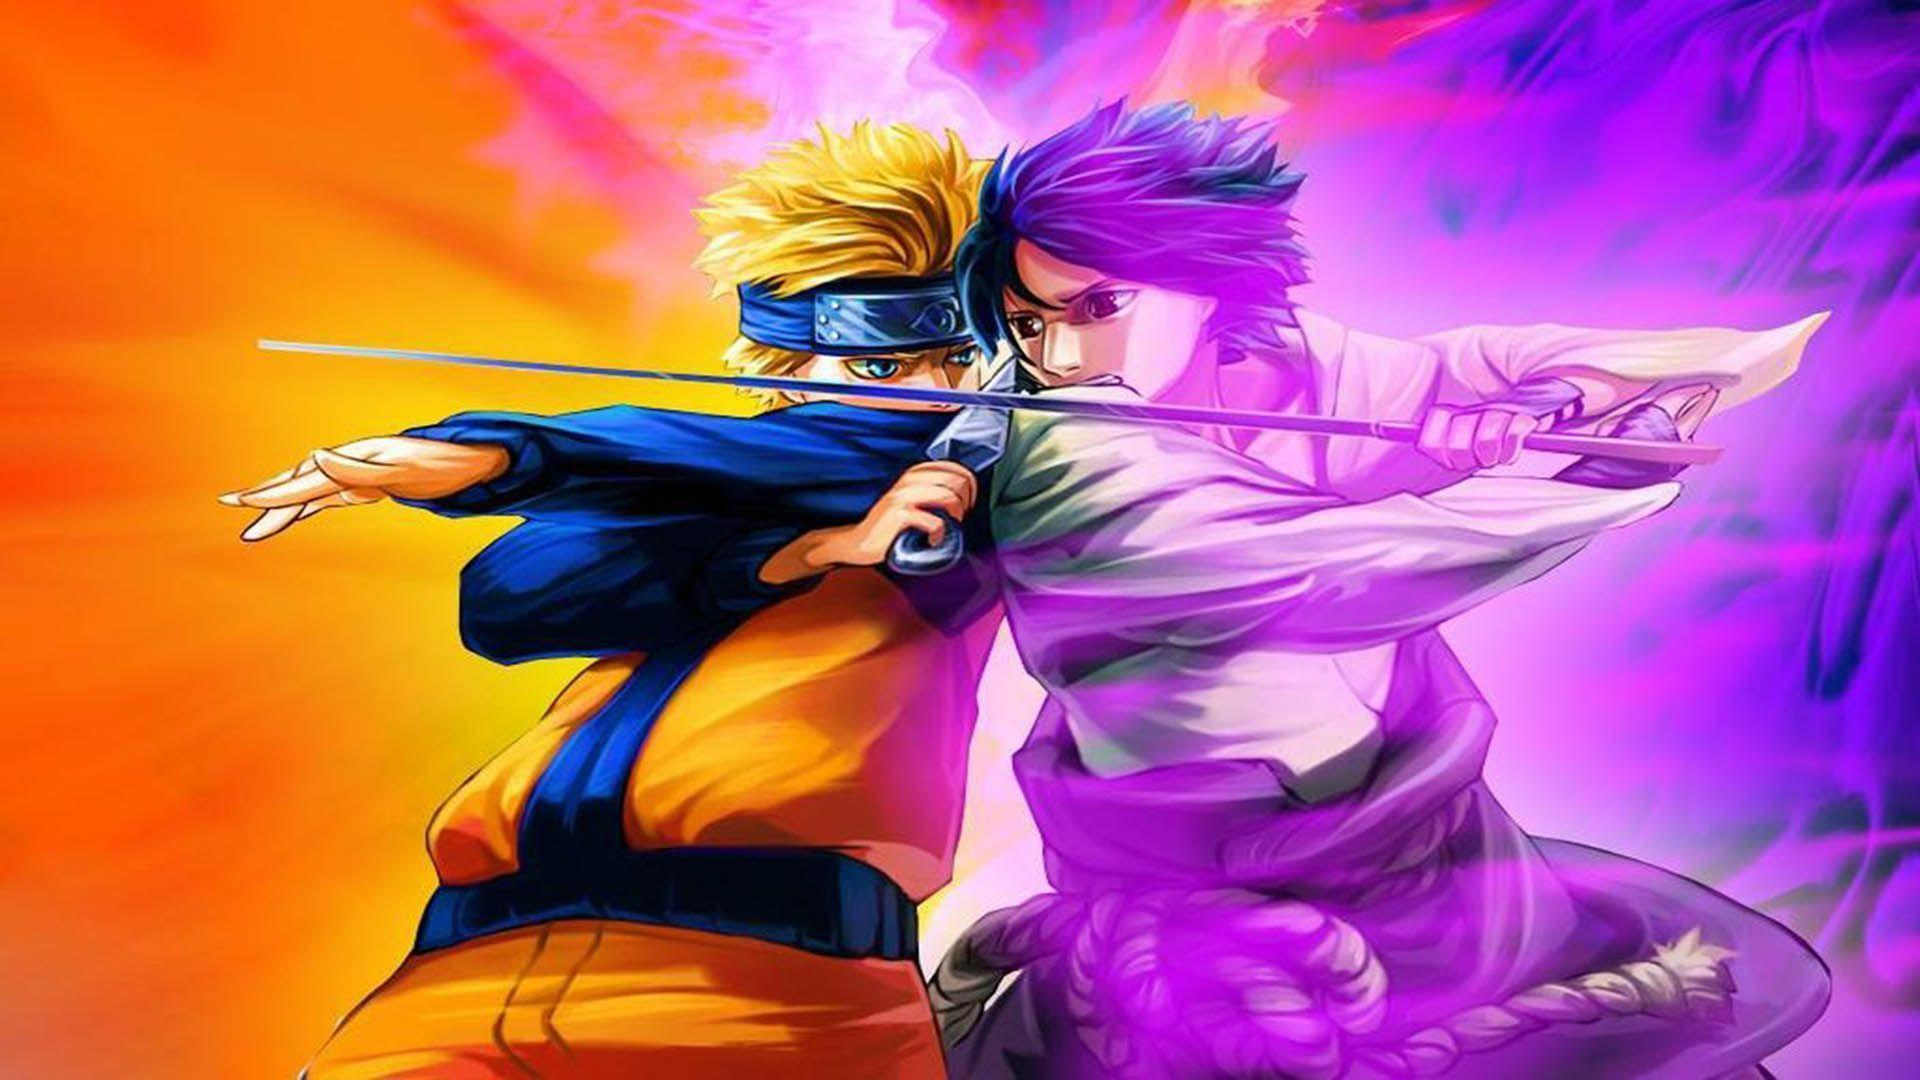 Naruto vs sasuke wallpapers wallpaper cave - Naruto as sasuke ...